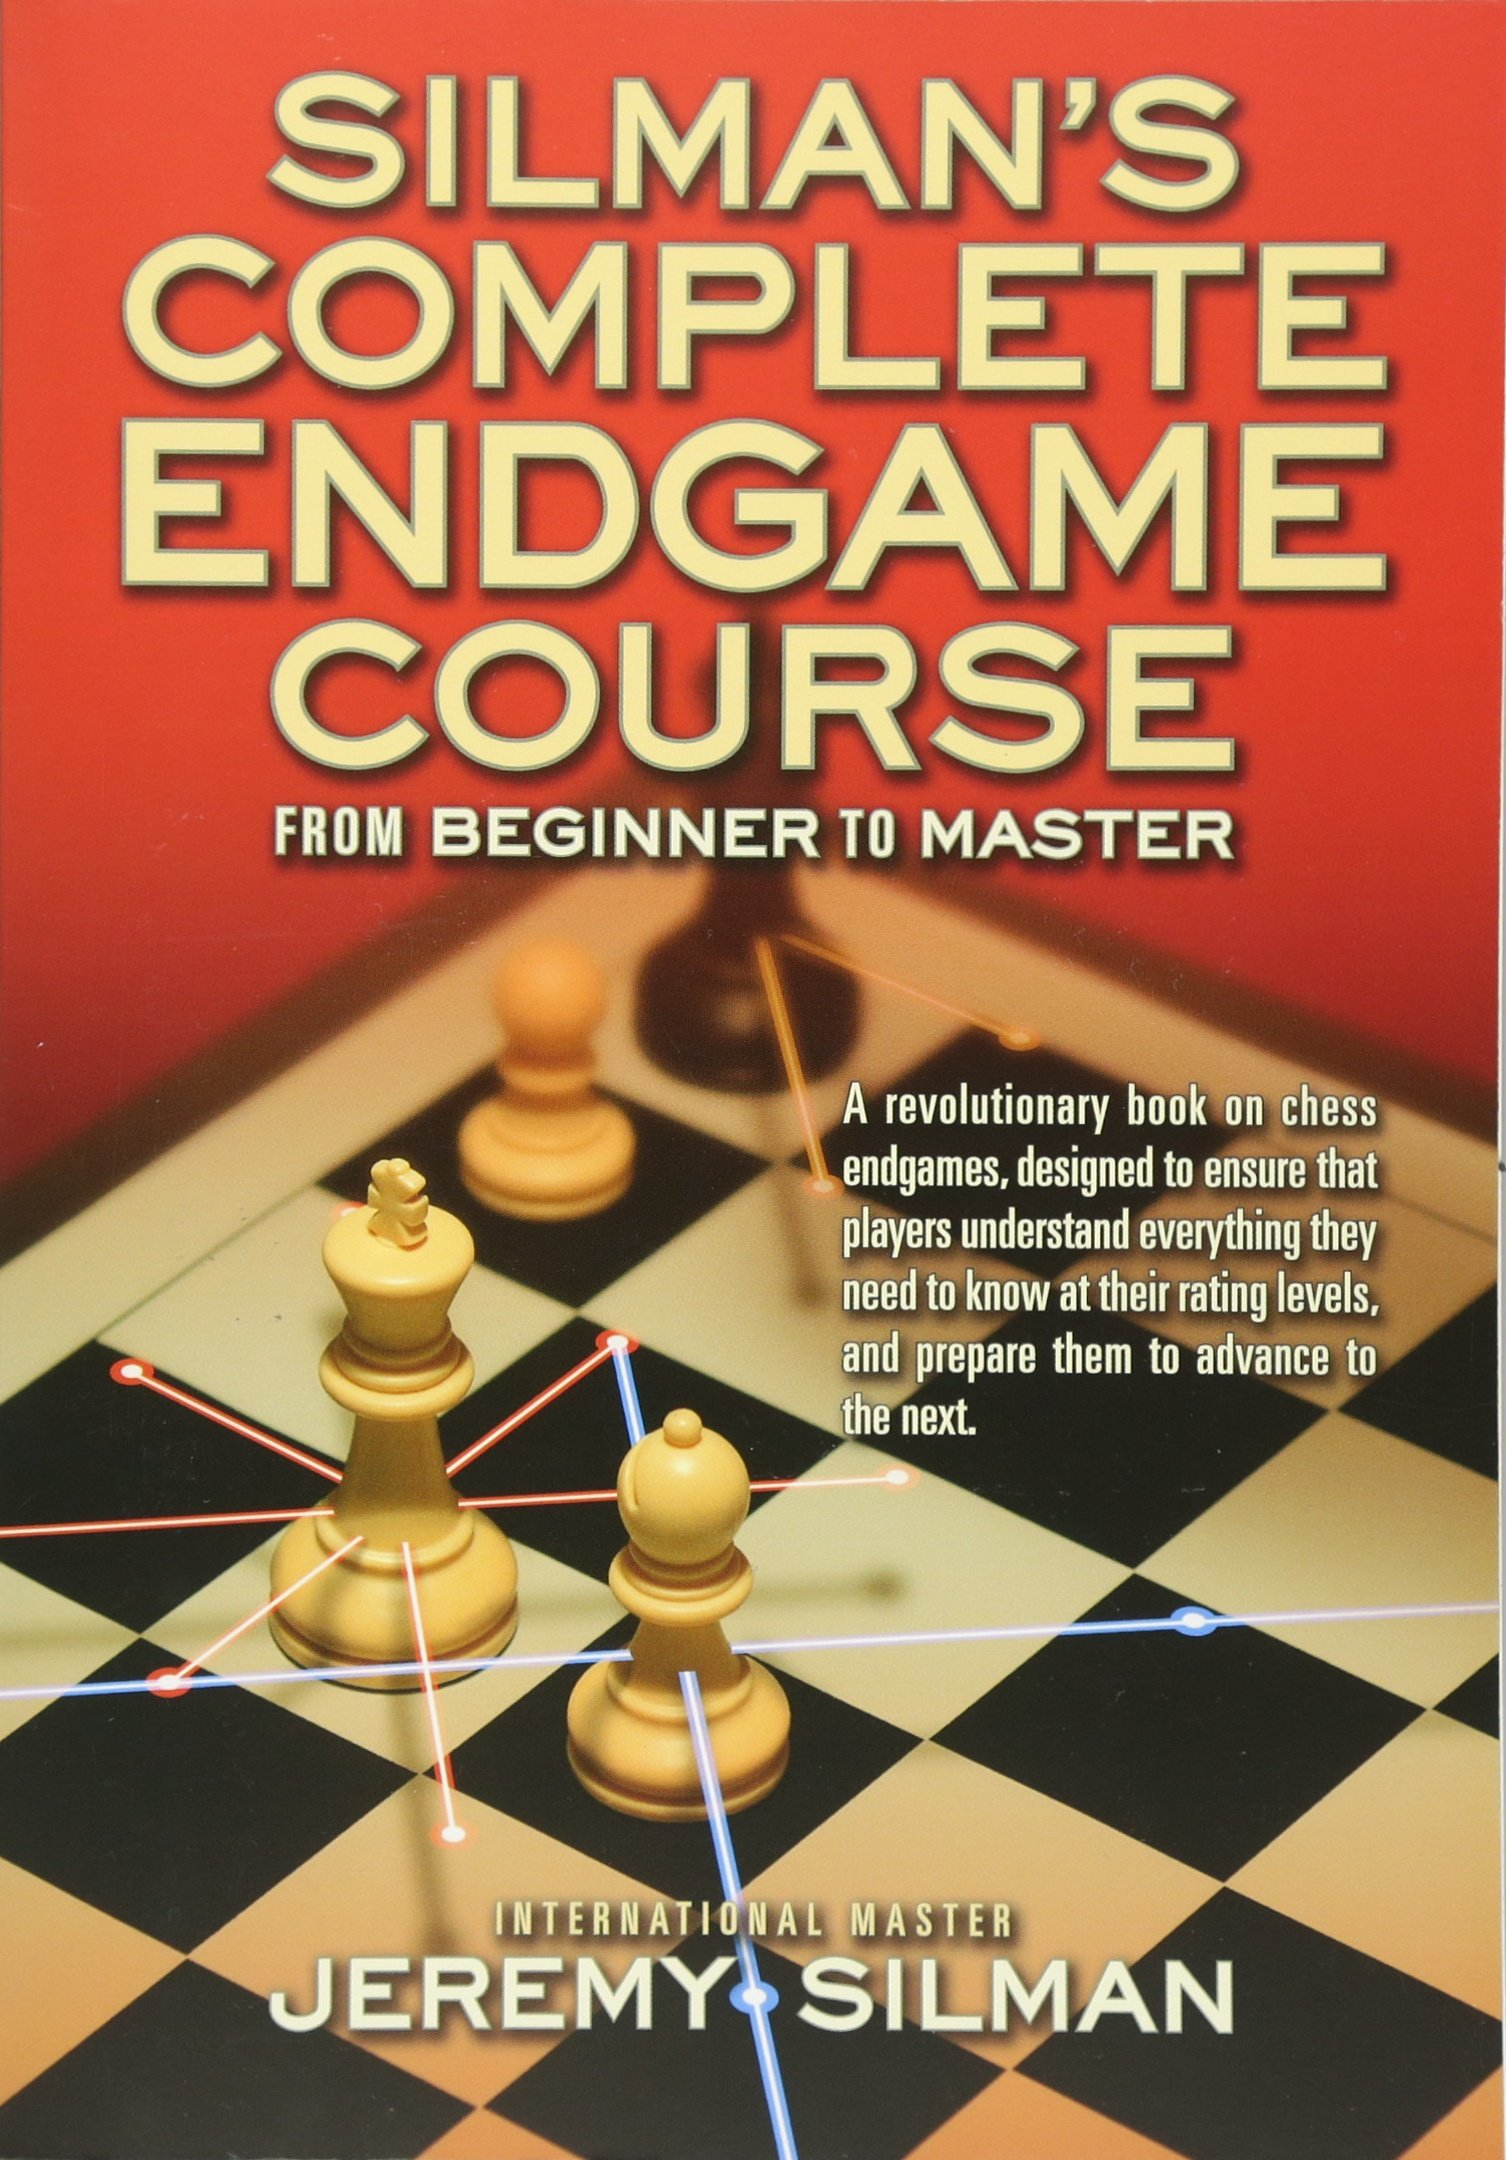 Image OfSilman's Complete Endgame Course: From Beginner To Master